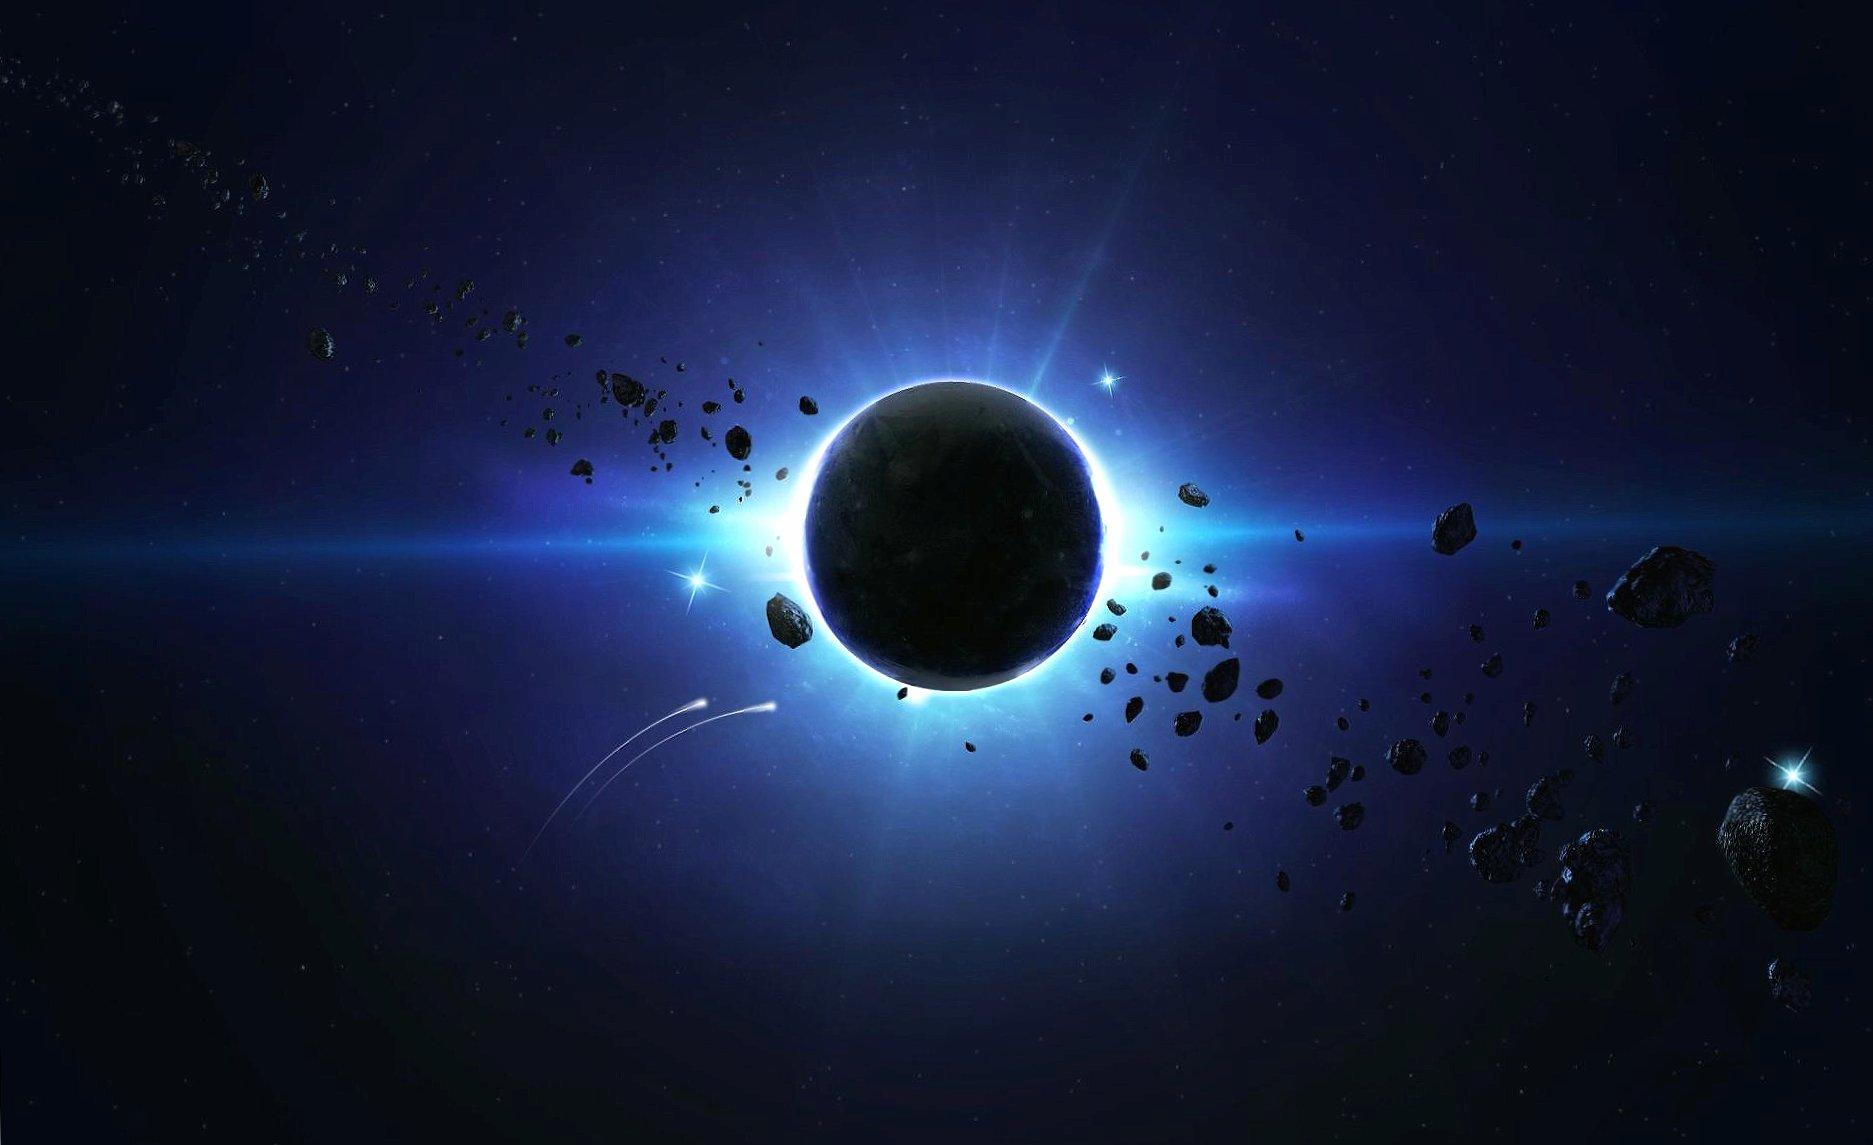 Space eclipse wallpapers HD quality